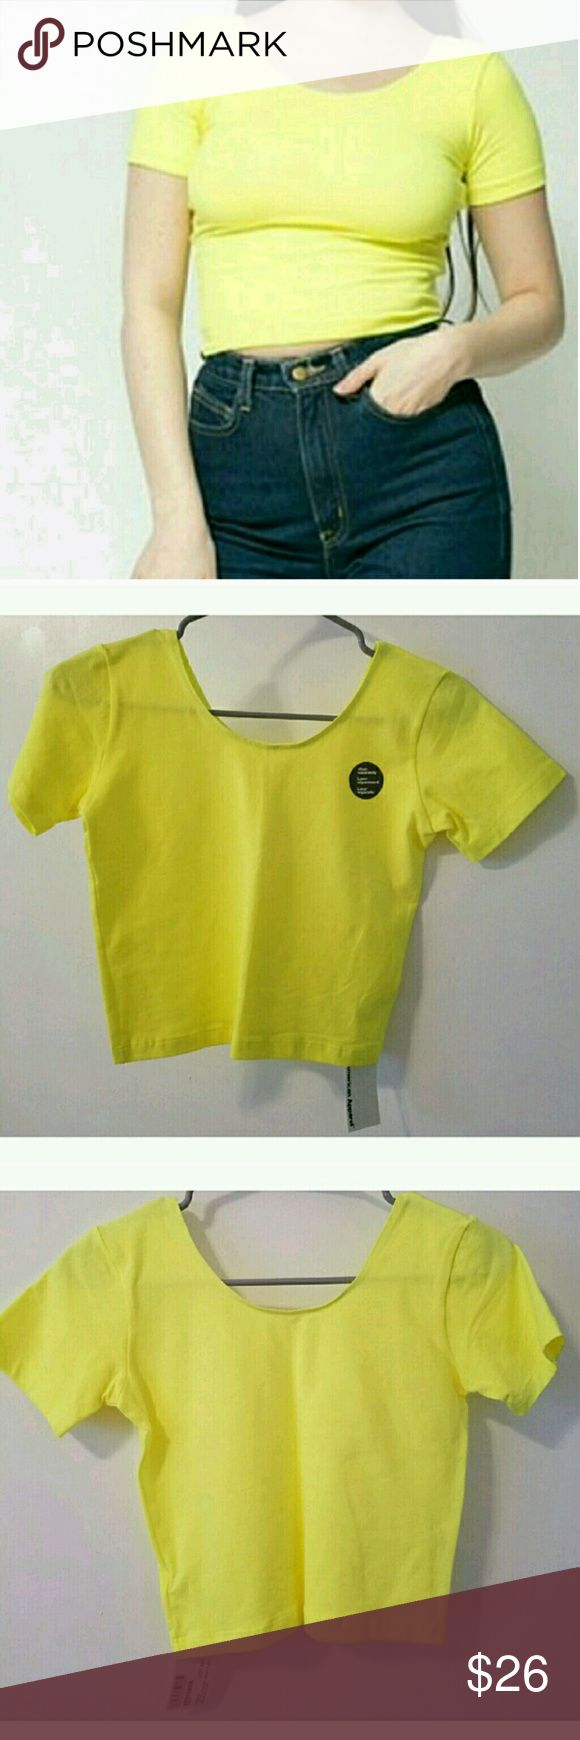 Neon Yellow Crop Top Neon Yellow Crop Top. Perfect everyday Top with Jeans, Shorts, Skirts. In perfect condition. Made in USA. American Apparel Tops Crop Tops